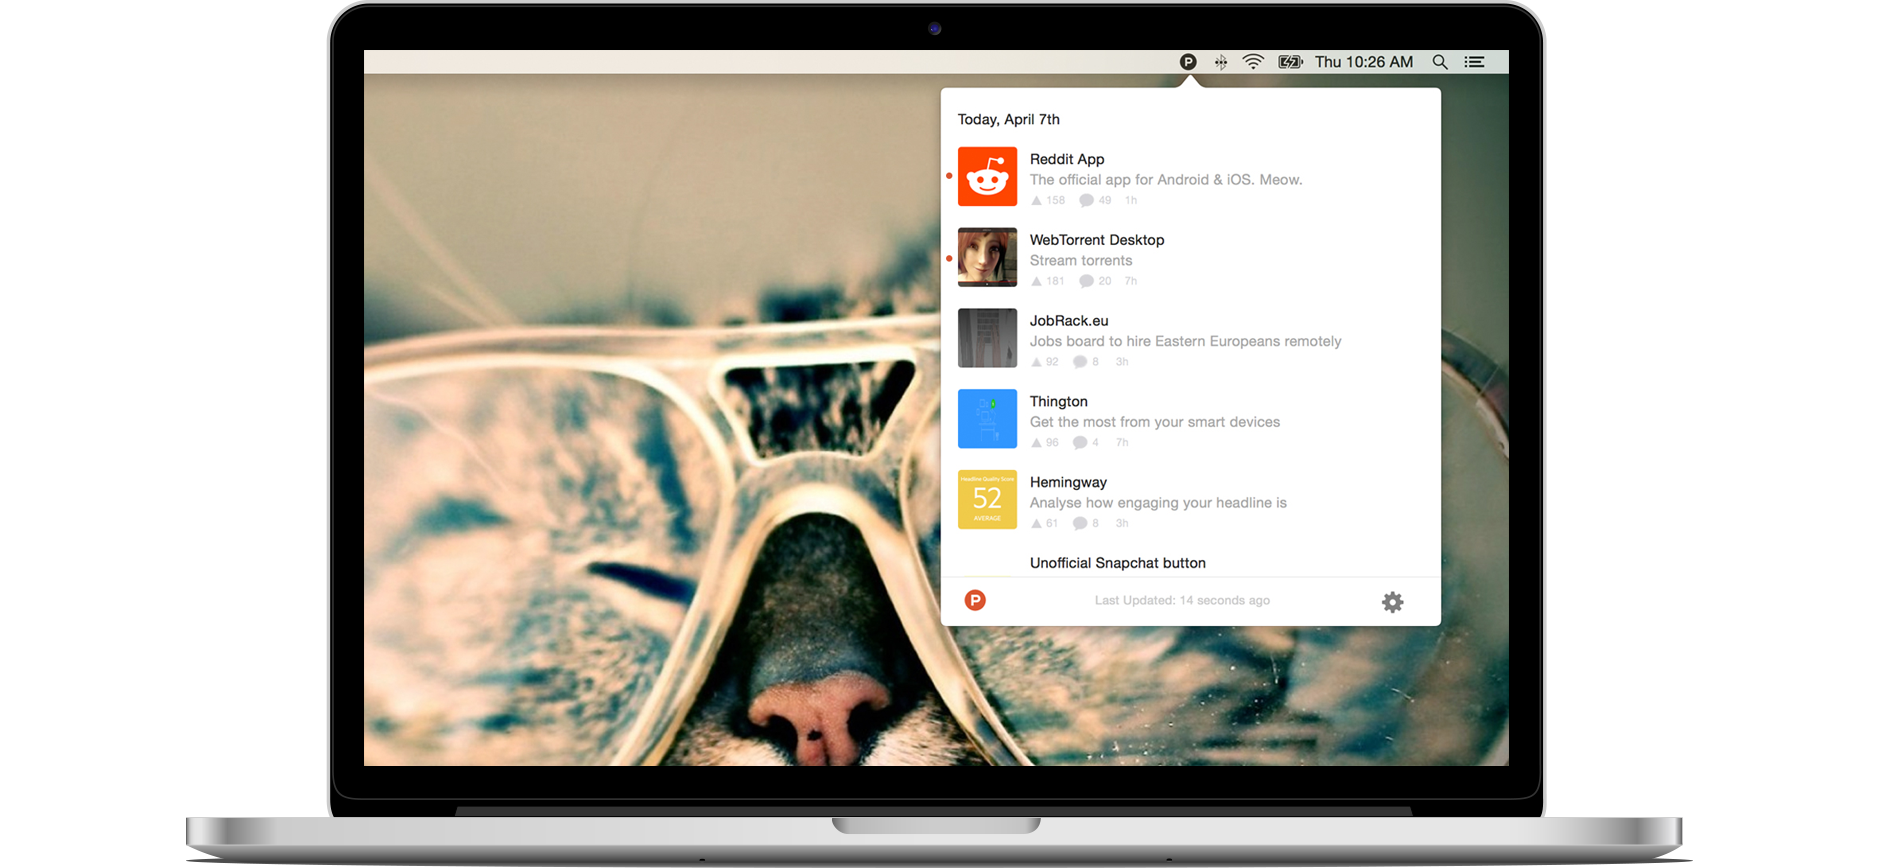 product-hunt-for-mac-100657052-orig.png